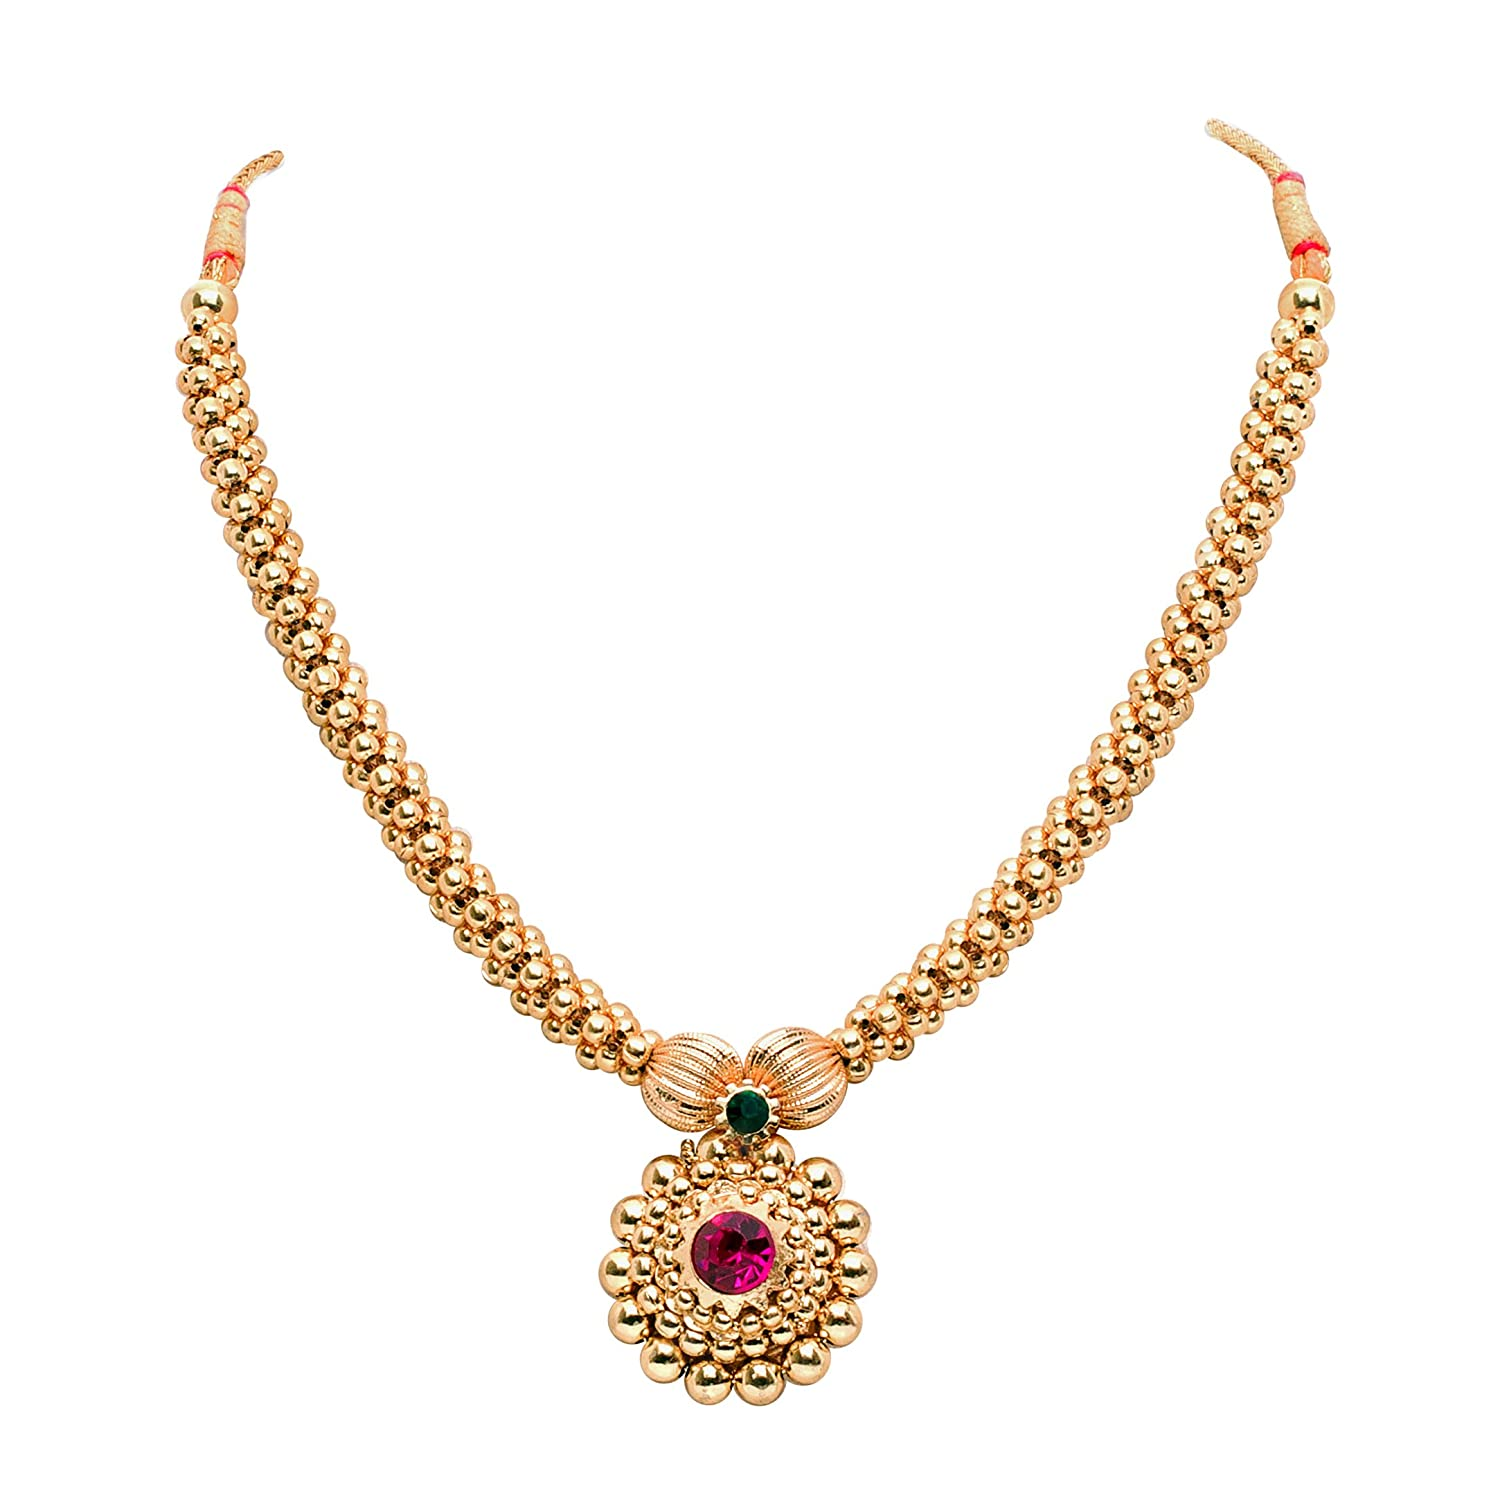 Buy senoritas traditional gold plated thushi th0001 with pink buy senoritas traditional gold plated thushi th0001 with pink stones and flower pendant online at low prices in india amazon jewellery store amazon aloadofball Images